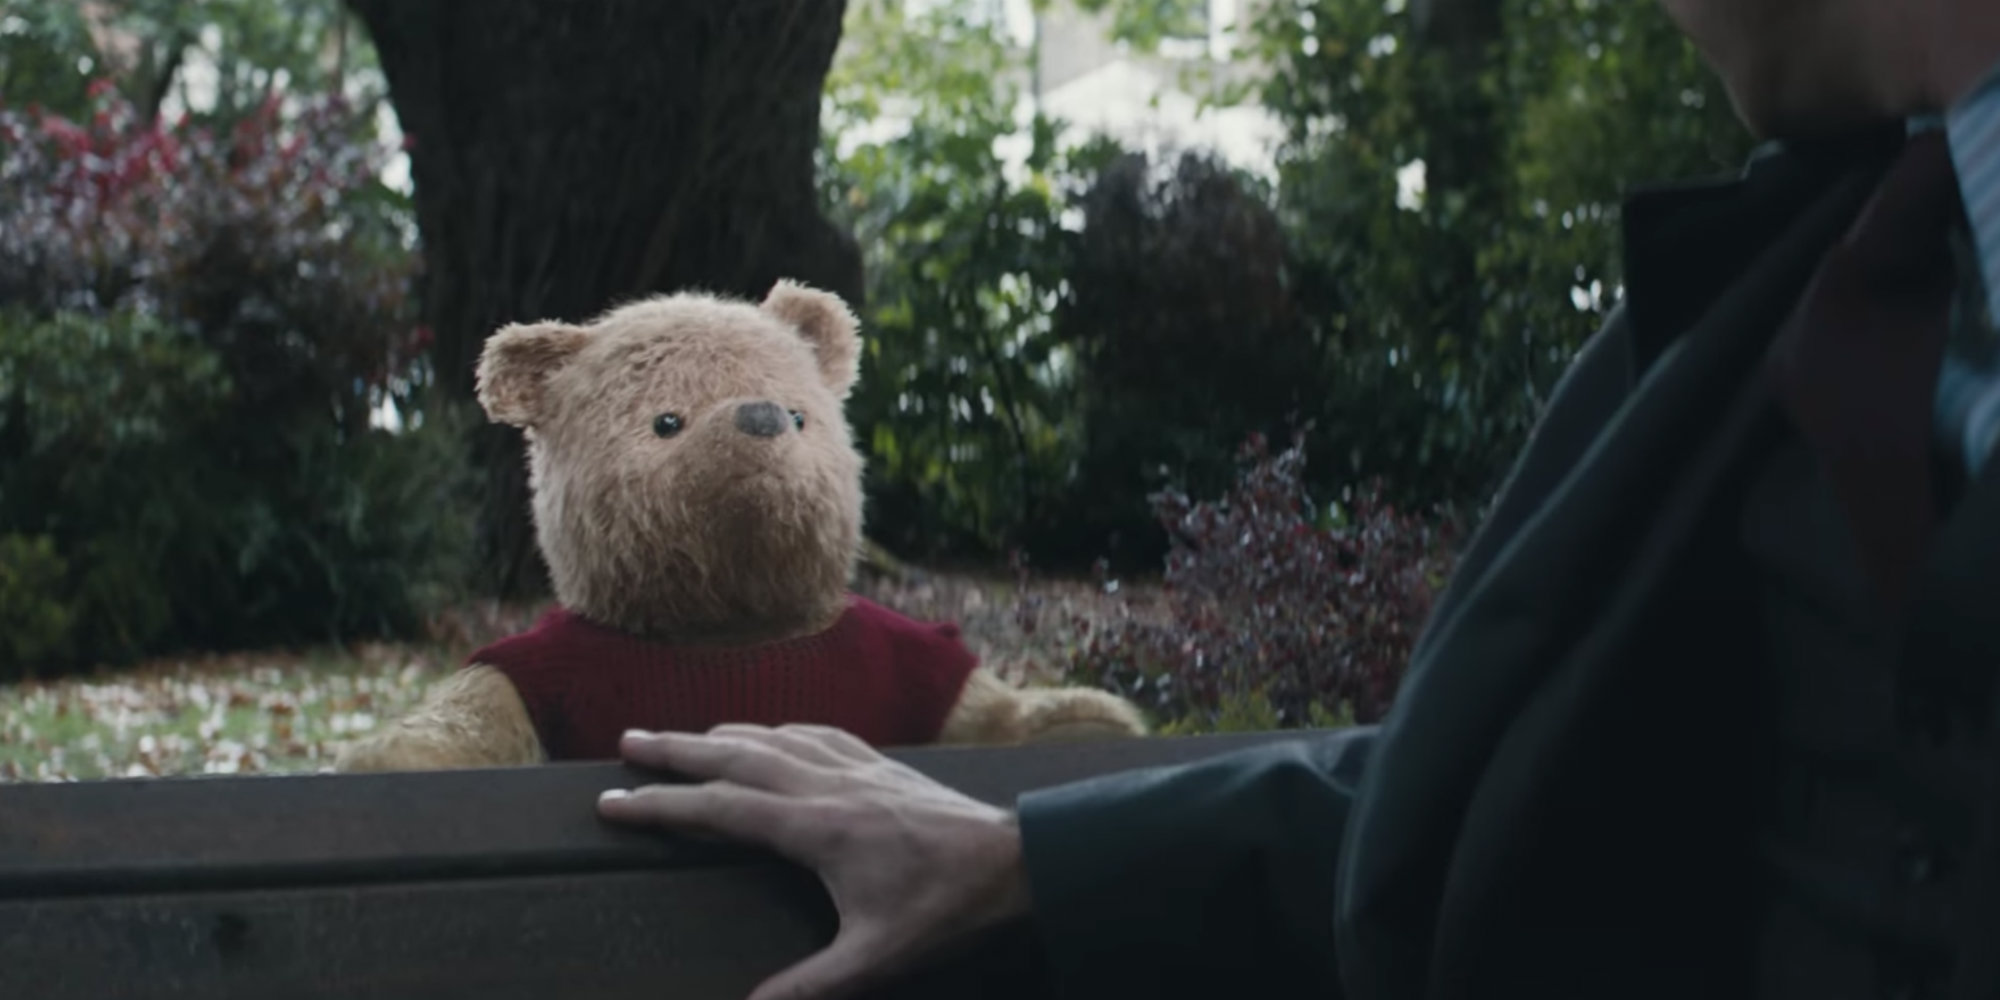 liveaction christoper robins winnie the pooh explained